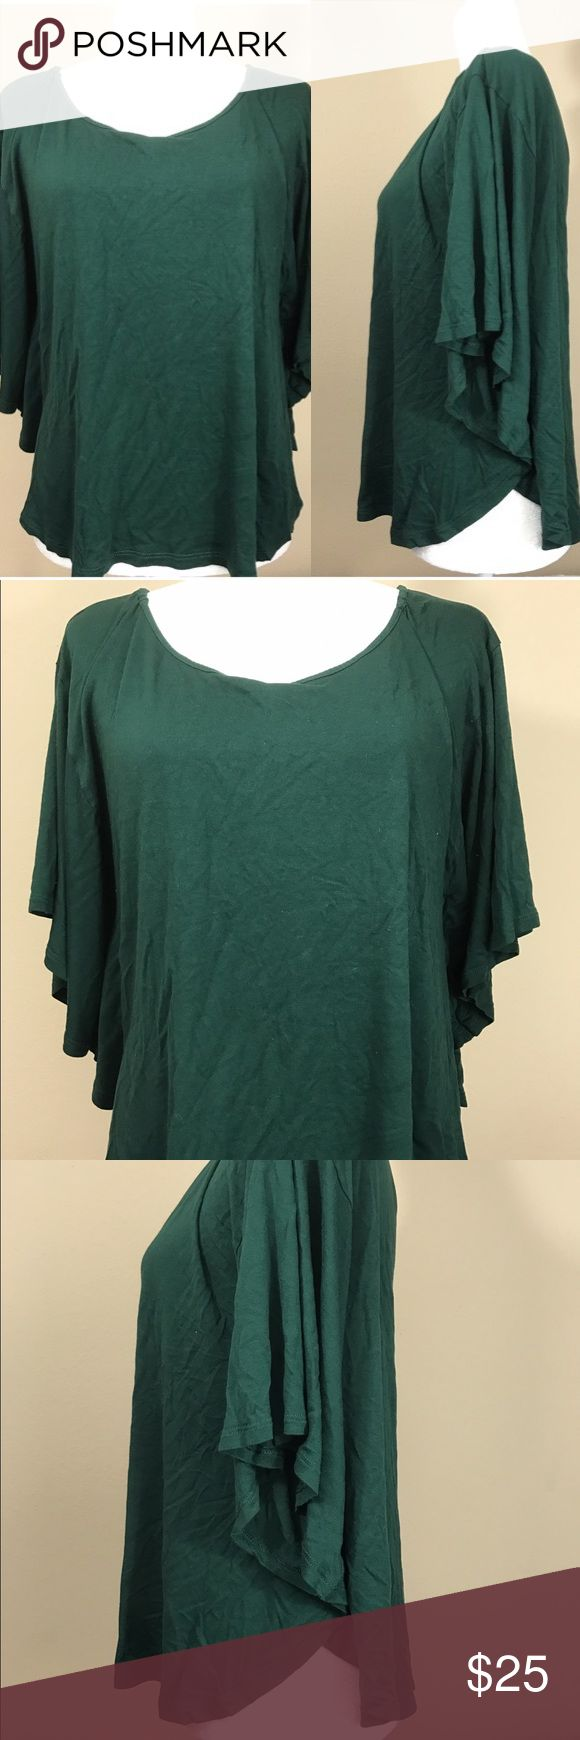 Mango forest green butterfly dolman top Great condition Mango Tops